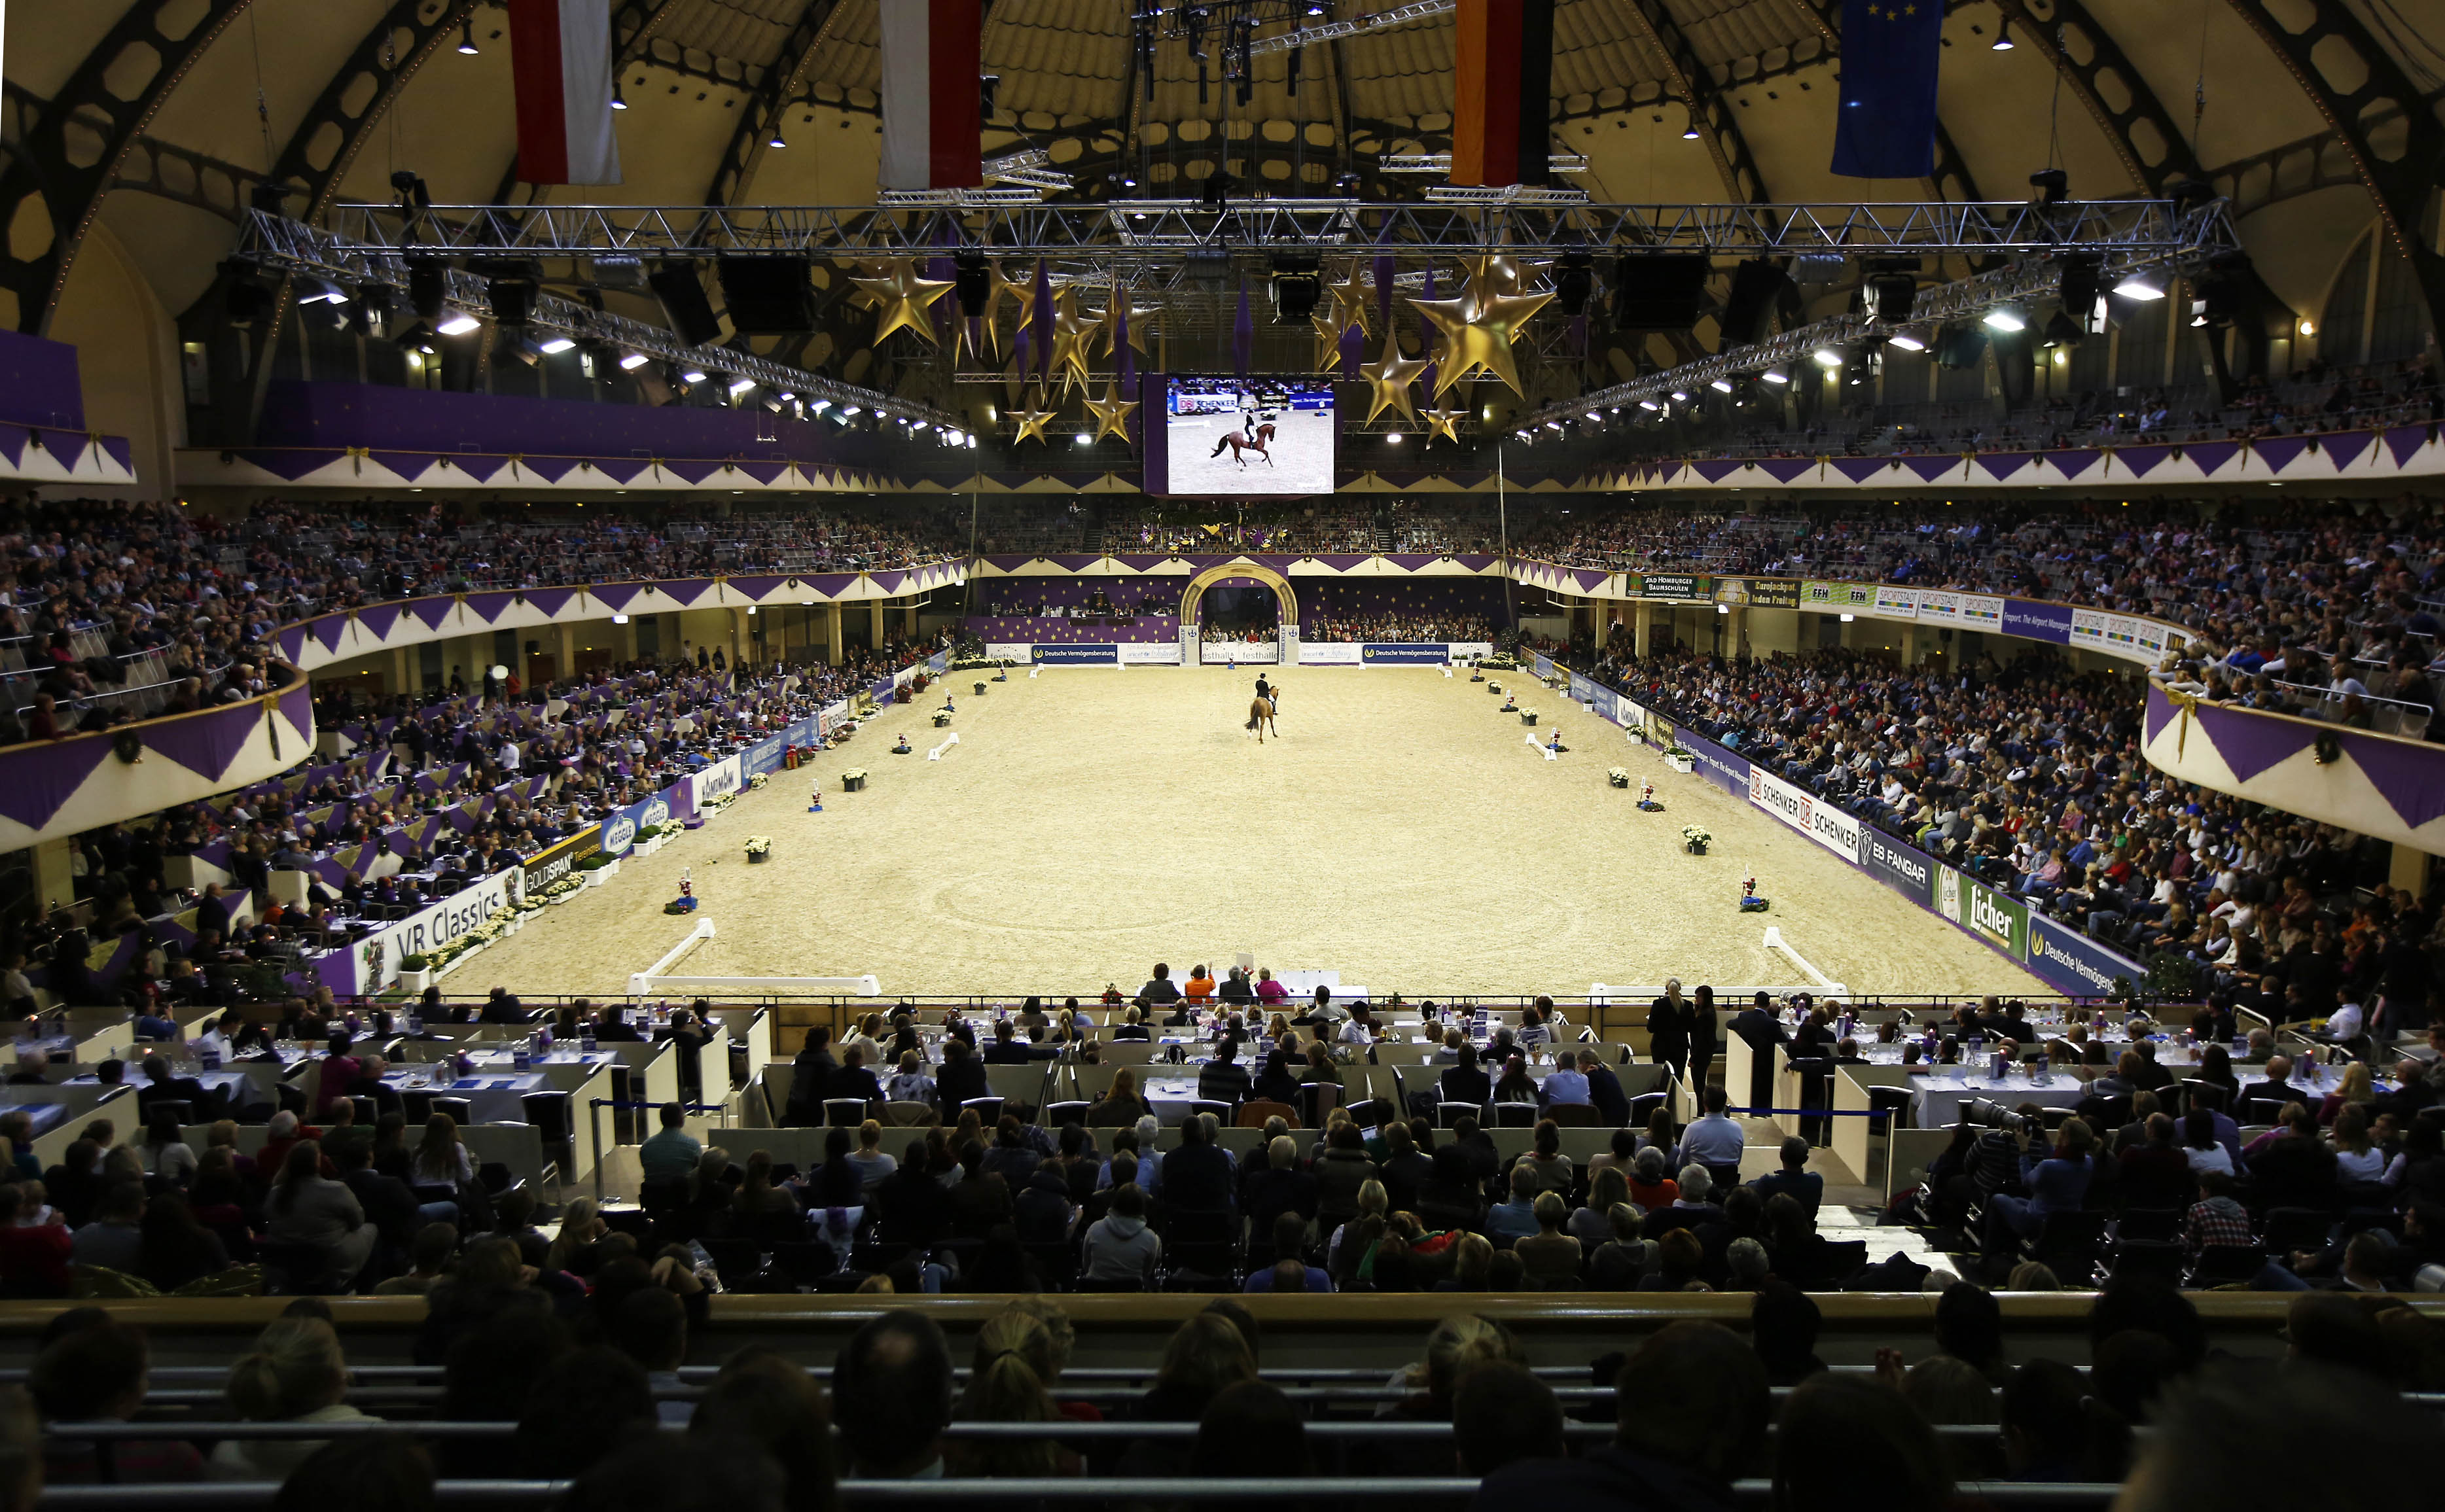 Festhalle - Horse riding contest